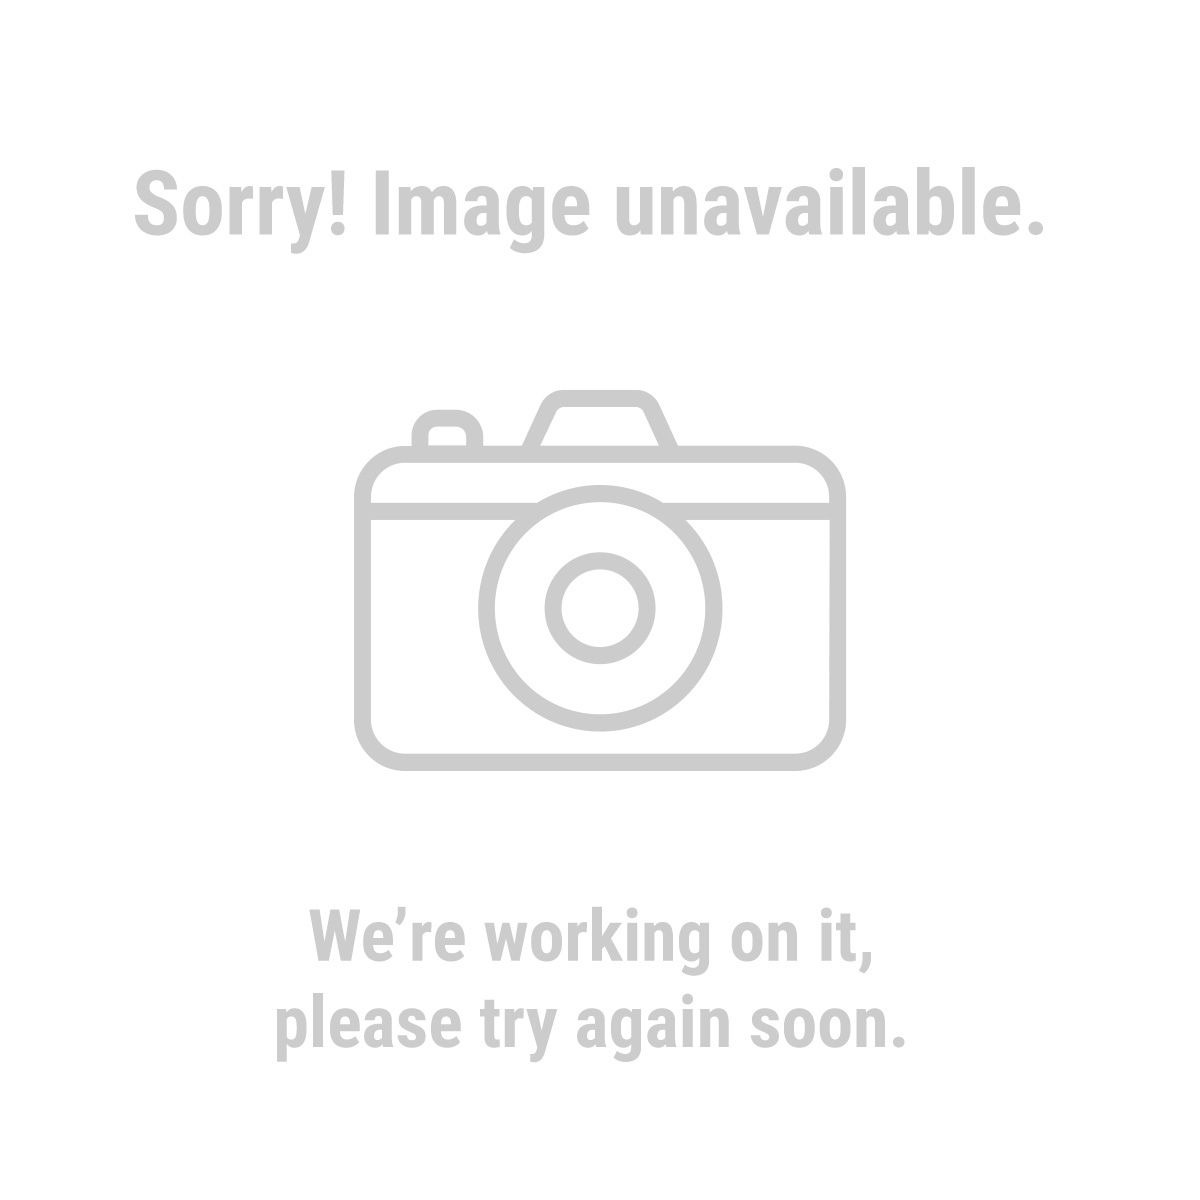 Admiral® 62739 7-1/4 in. 60 ATBT Finishing Circular Saw Blade